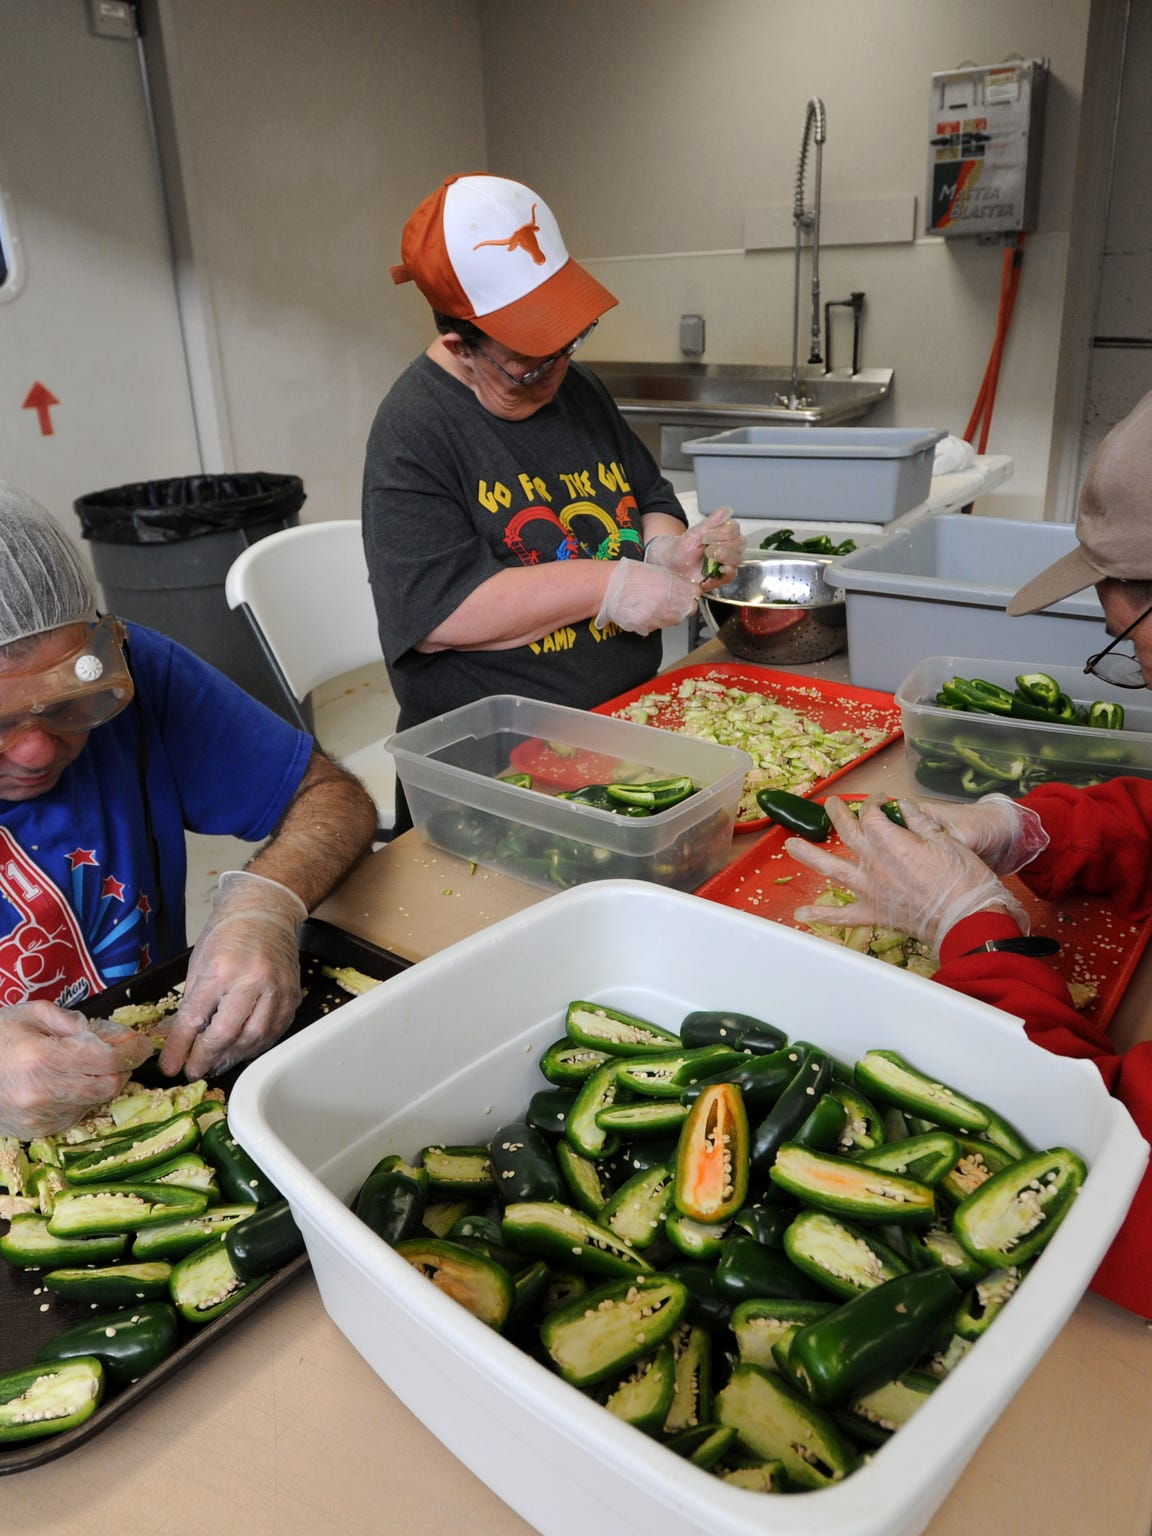 Allan Madding, left, Gina Graves, center, and Jeremy Antilley, right, remove seeds from jalapeno peppers at  Disability Resources Inc. in October 2012.